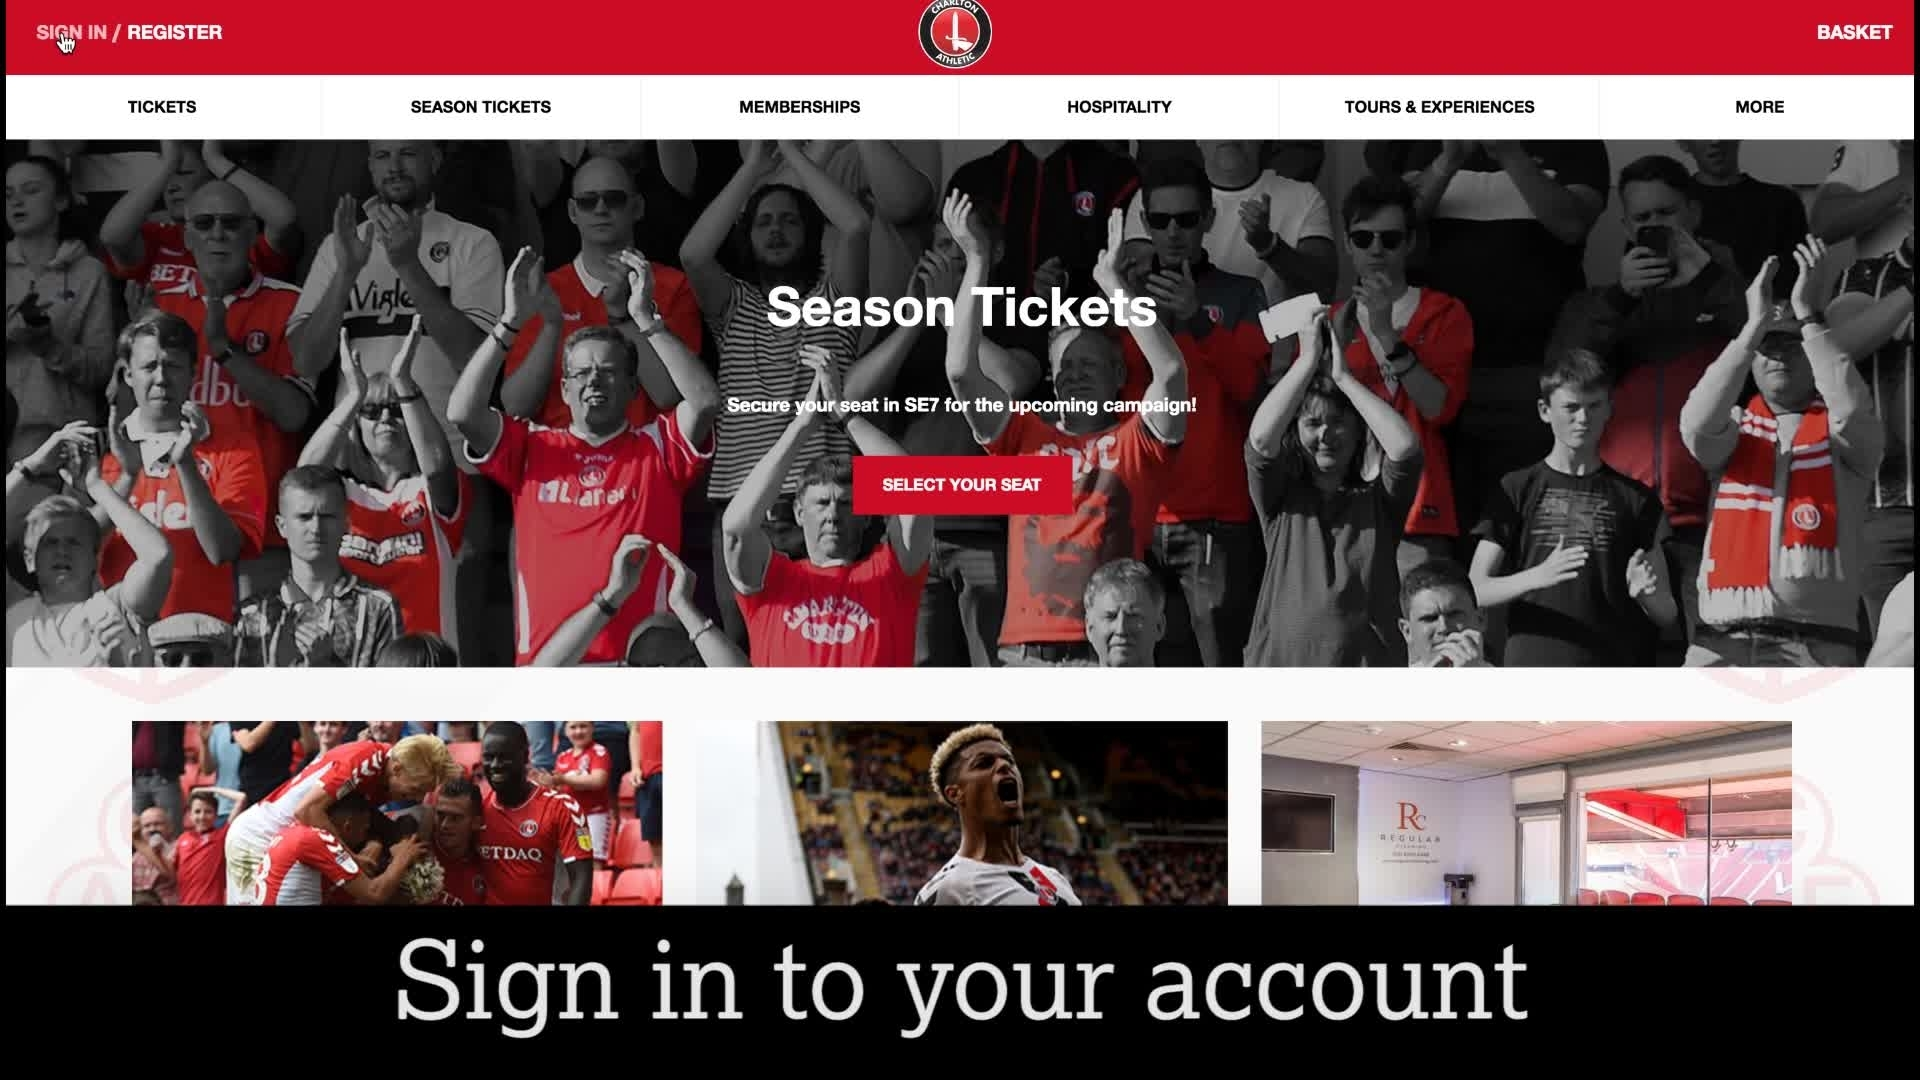 Buying playoff tickets | How to purchase your season ticket seat for the play-offs